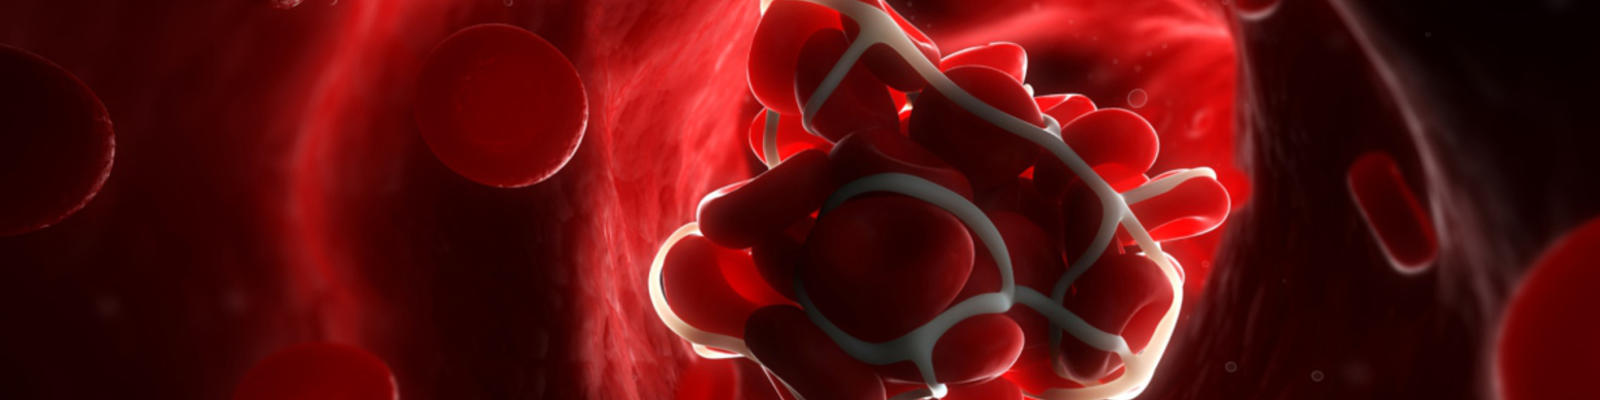 A computerised render of a blood clot in the bloodstream